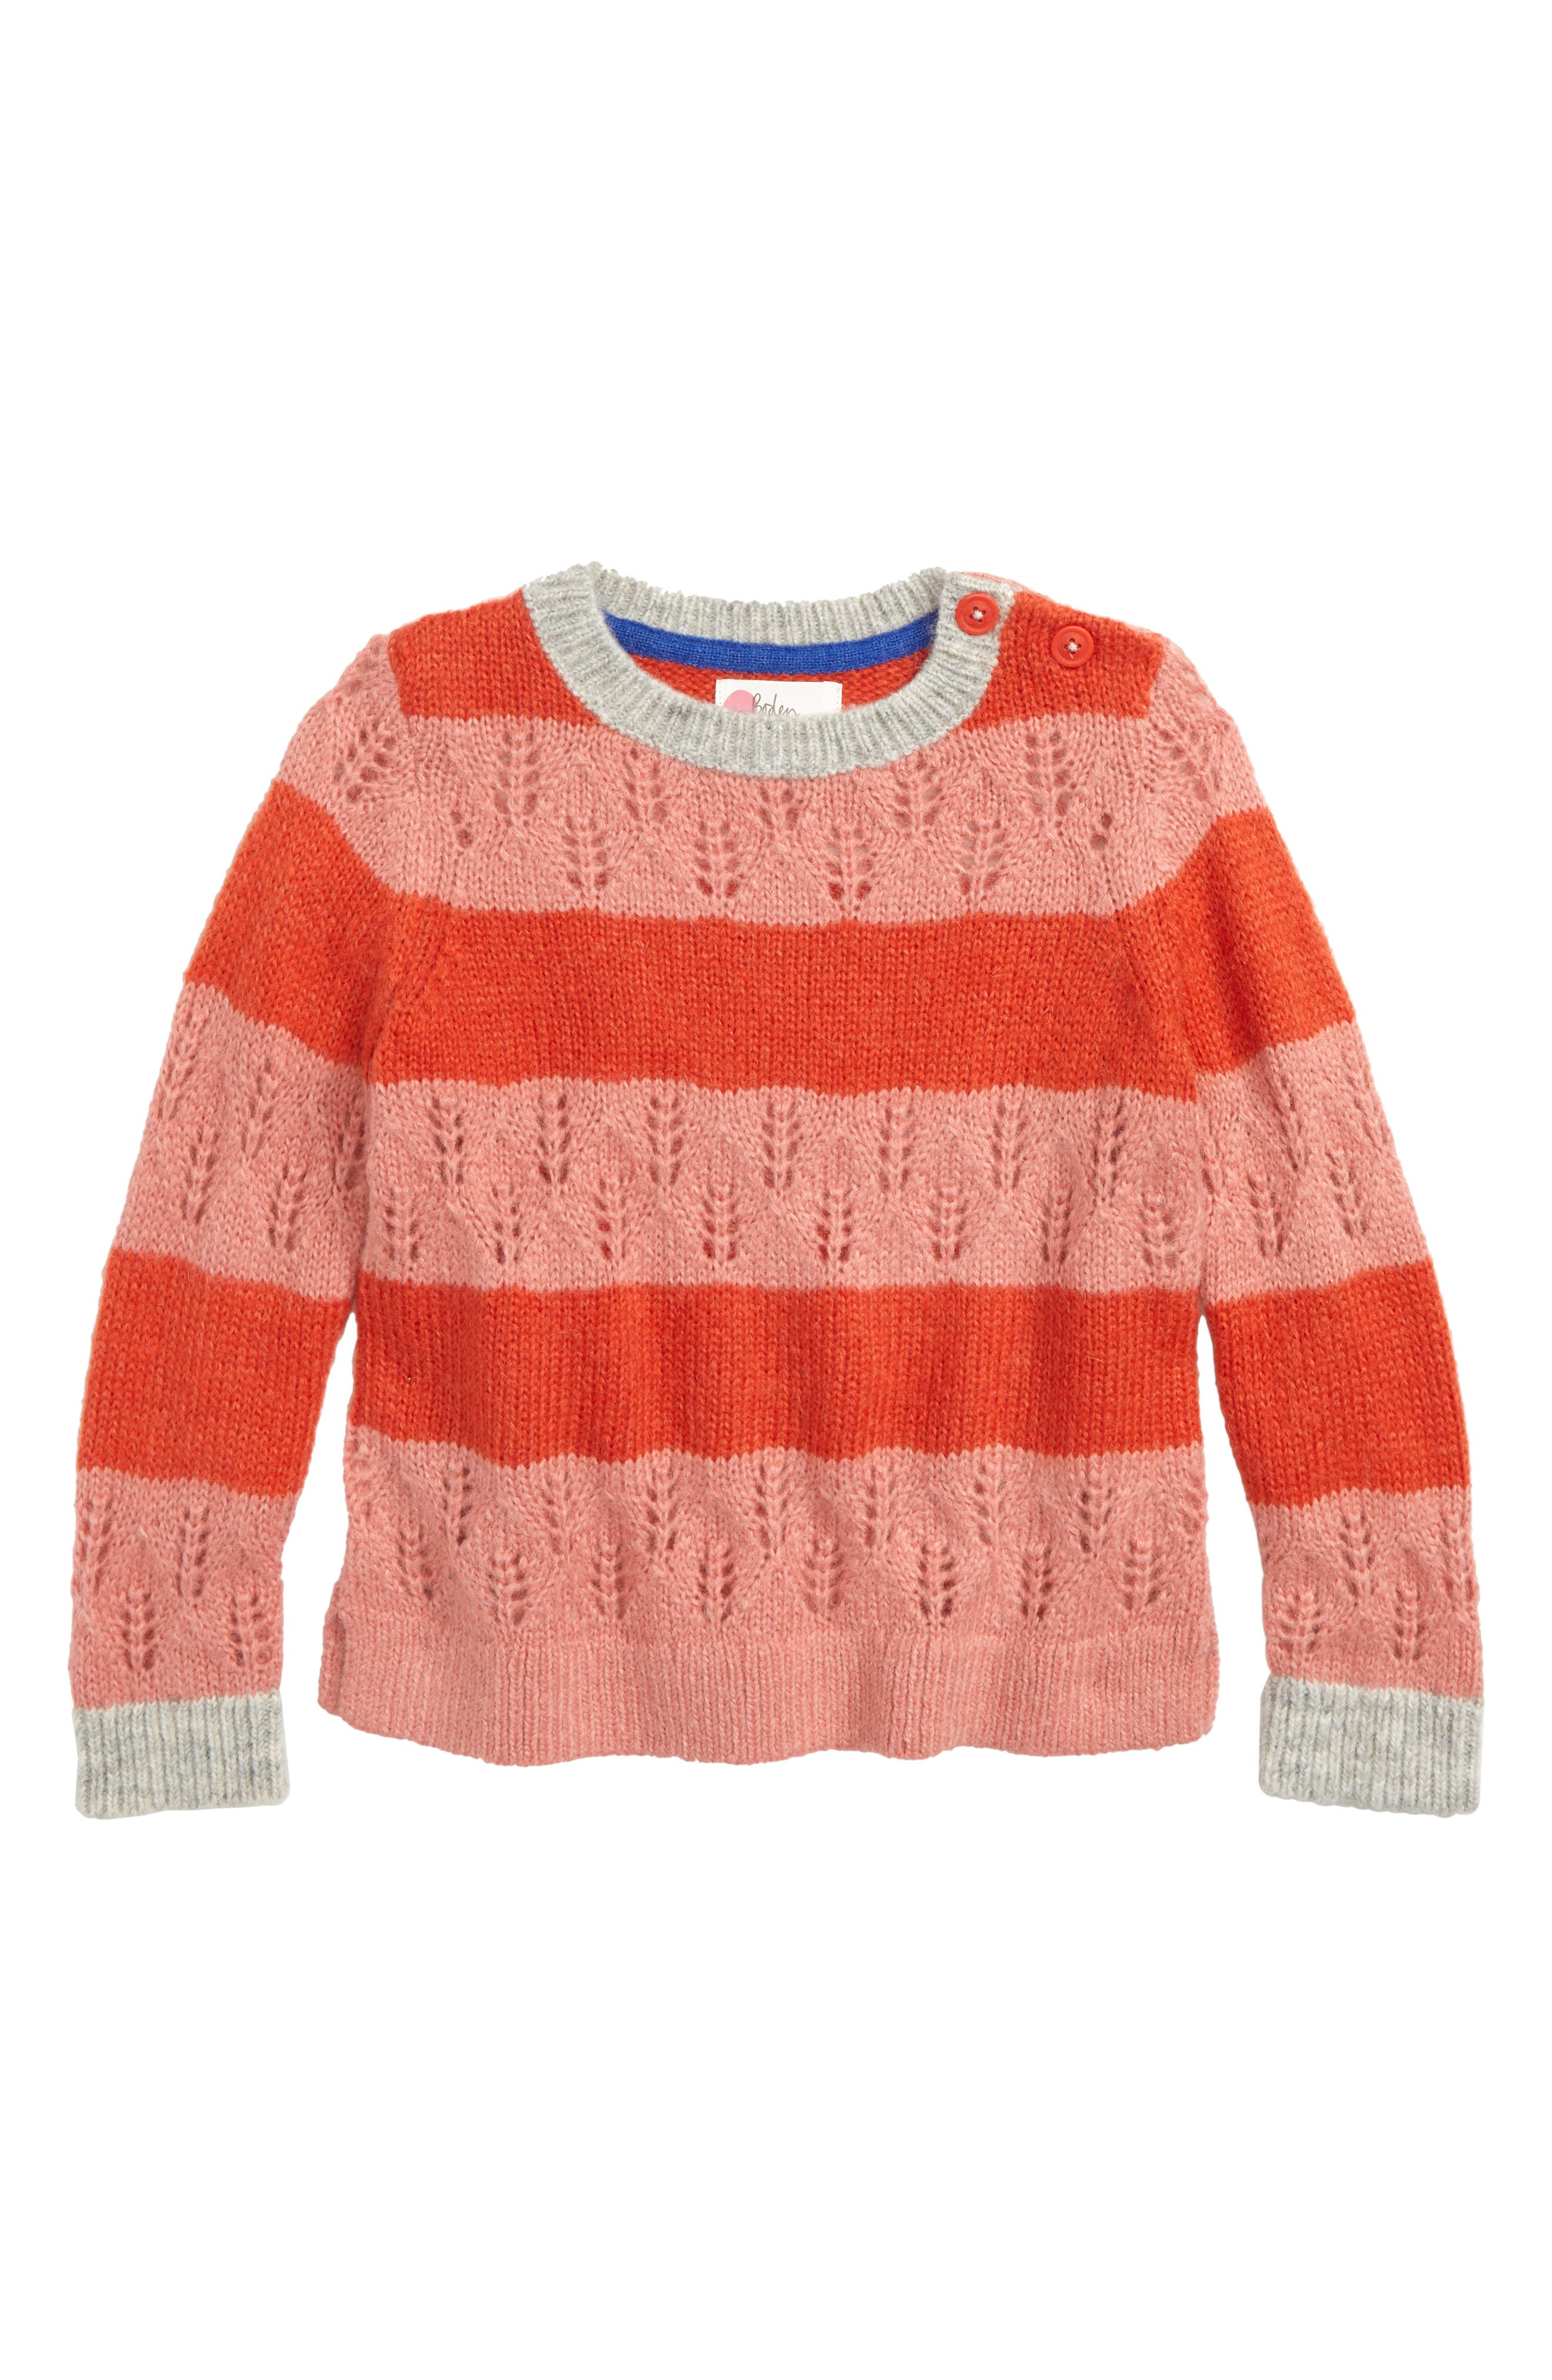 Stripe Knit Sweater,                             Main thumbnail 1, color,                             POPPY RED/ FORMICA PINK